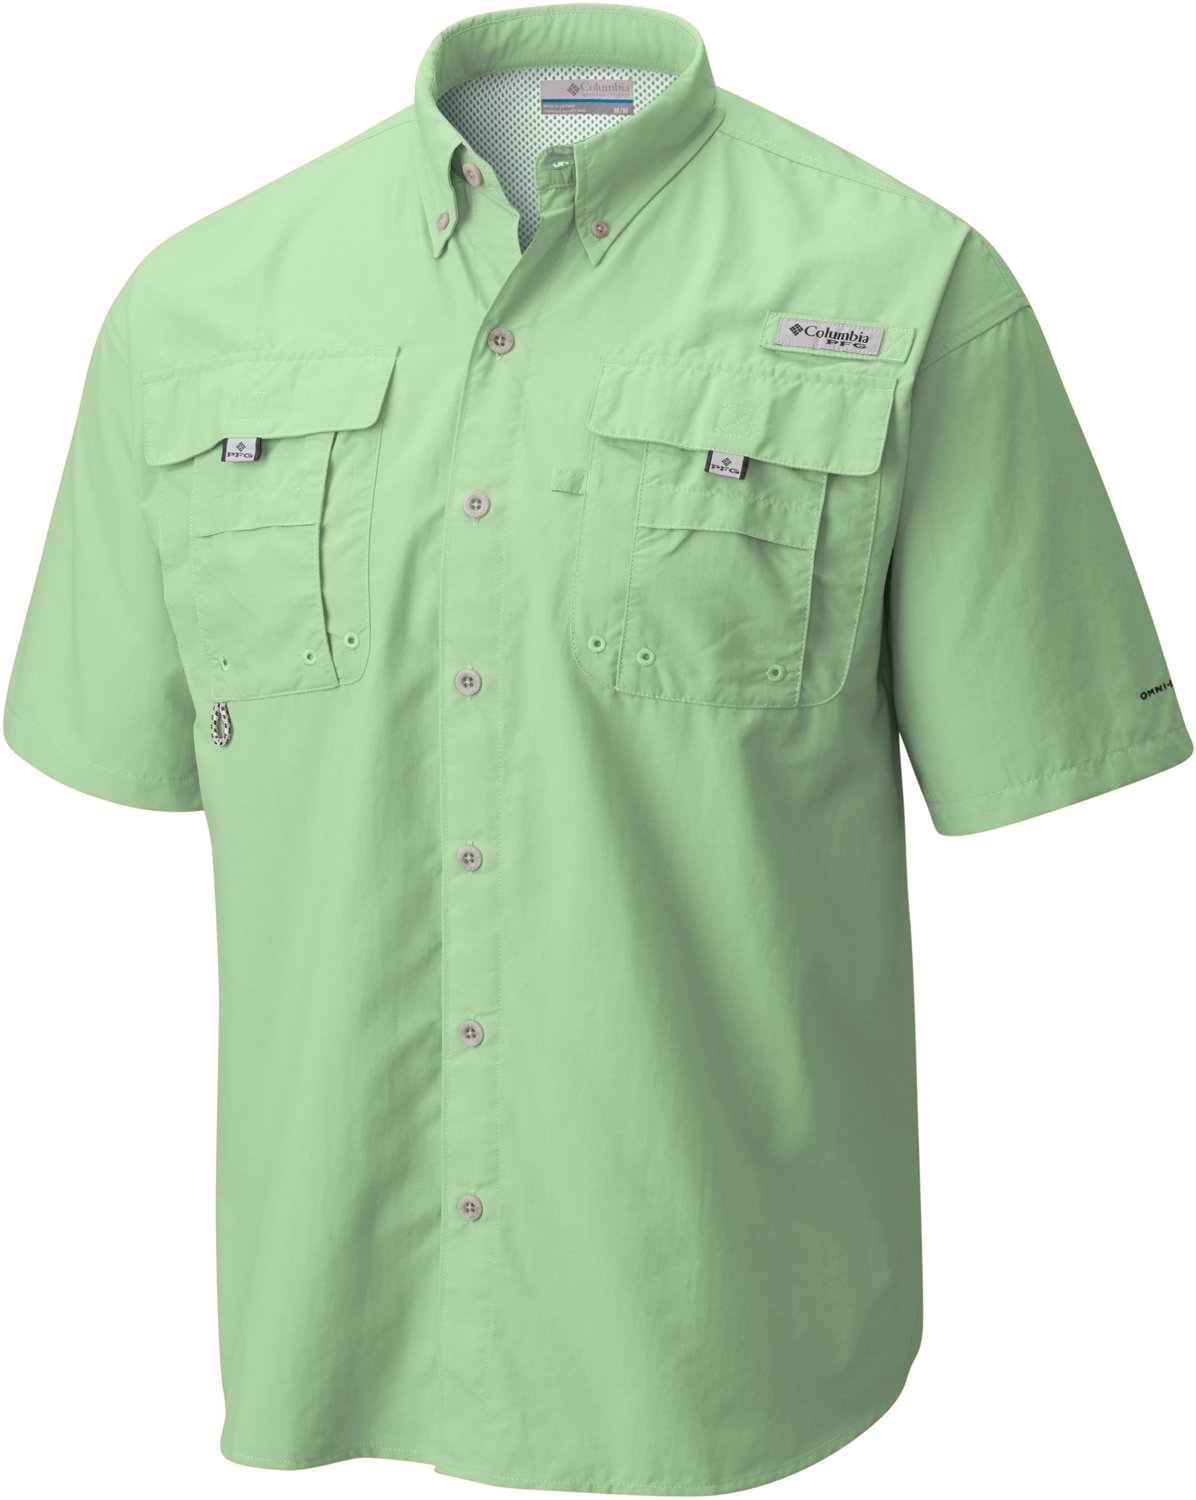 3ec0d077 Display product reviews for Columbia Sportswear Men's Bahama II Shirt